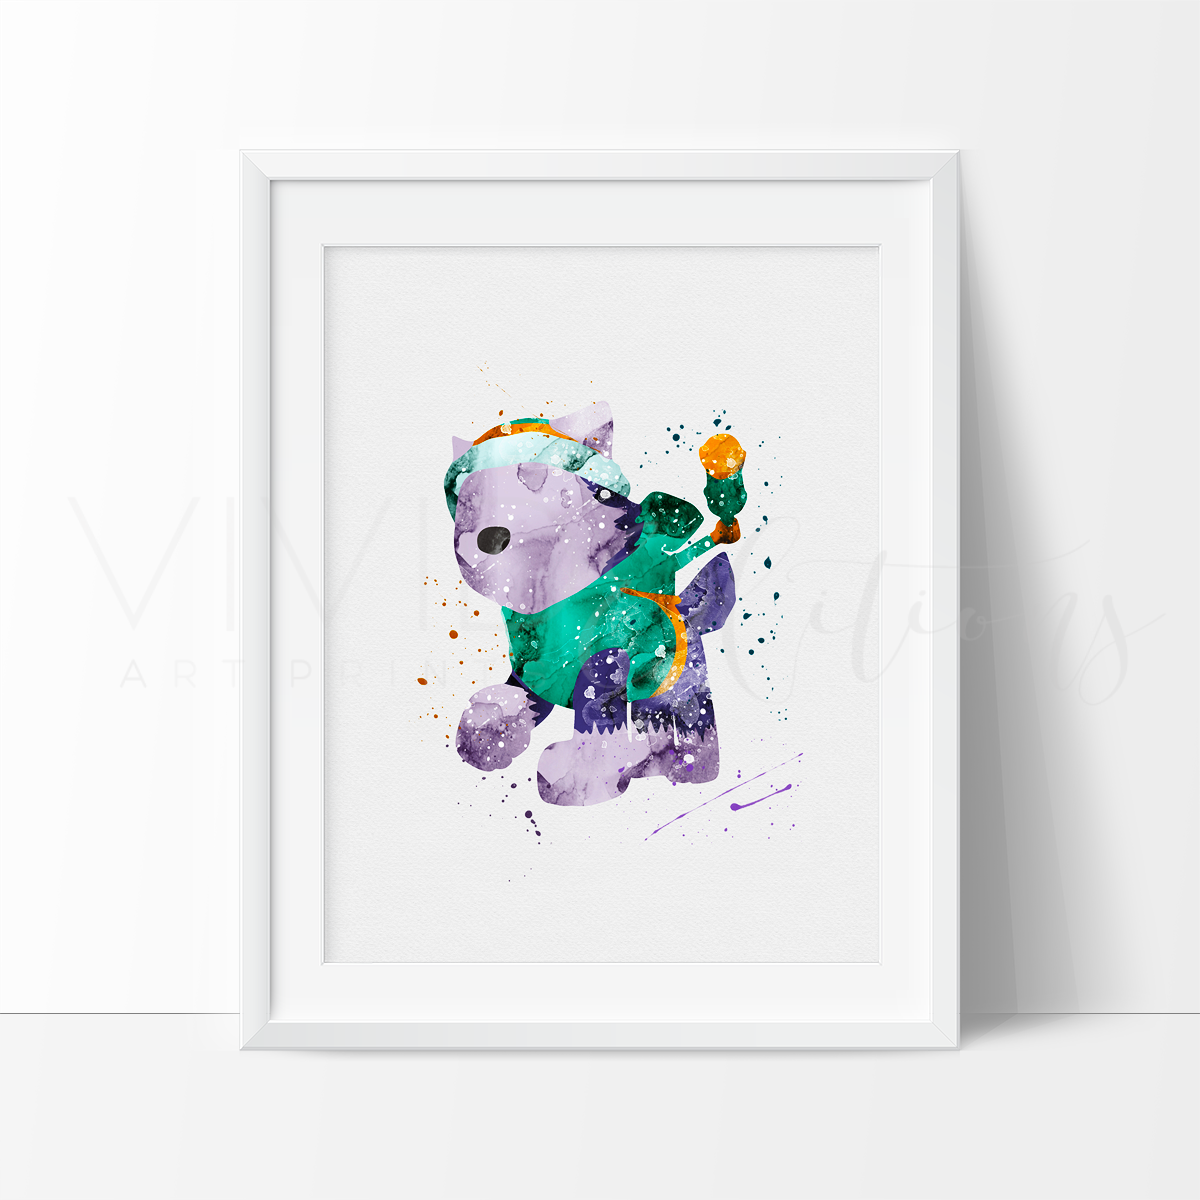 Everest, Paw Patrol Watercolor Art Print Art Print - VIVIDEDITIONS